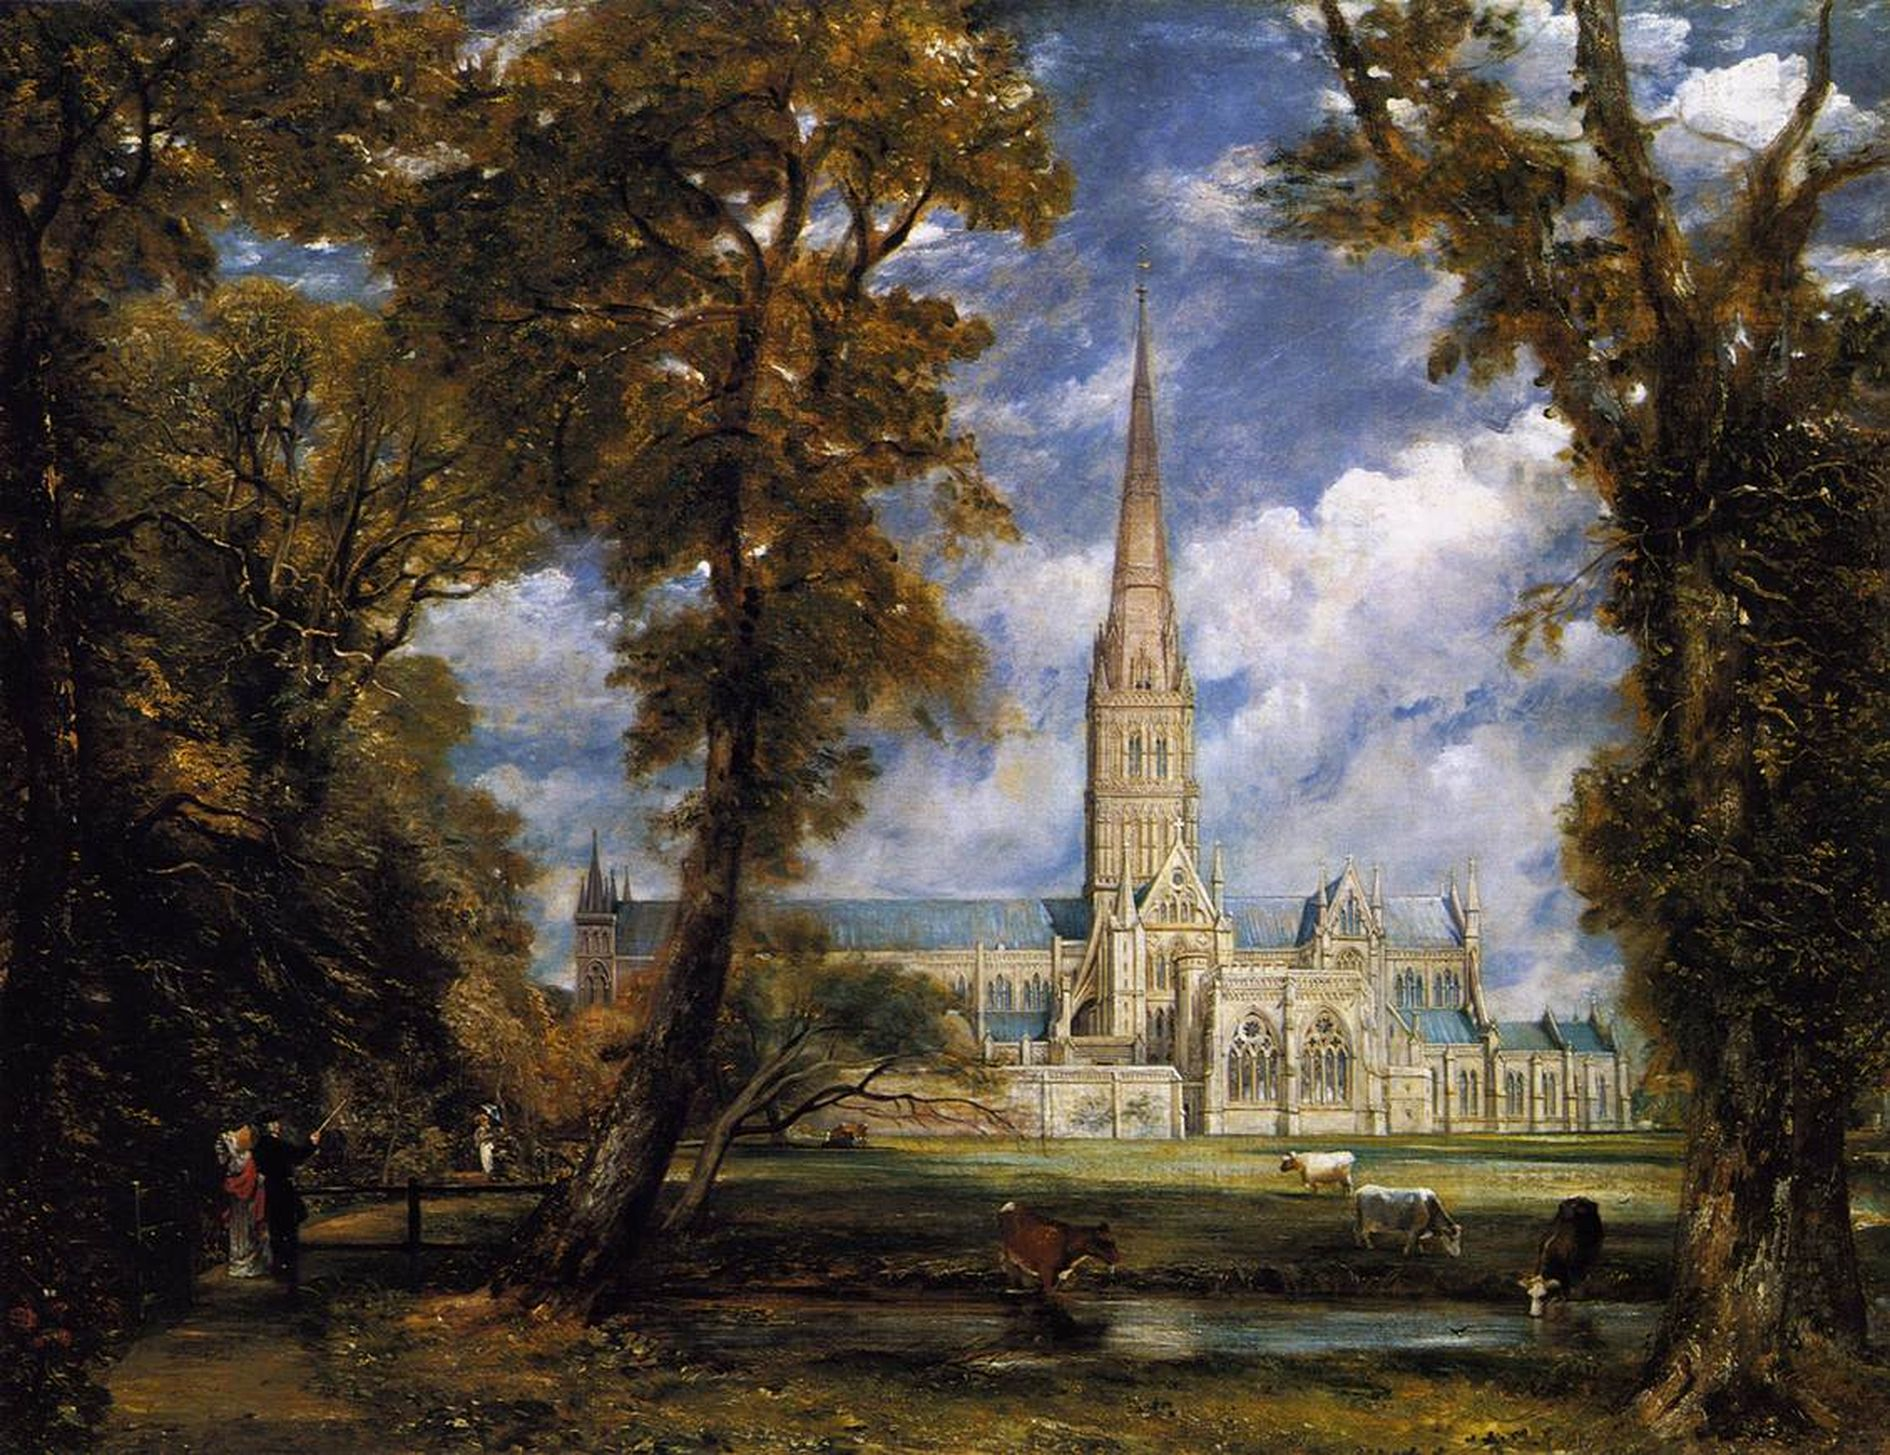 Salisbury Cathedral by John Constable